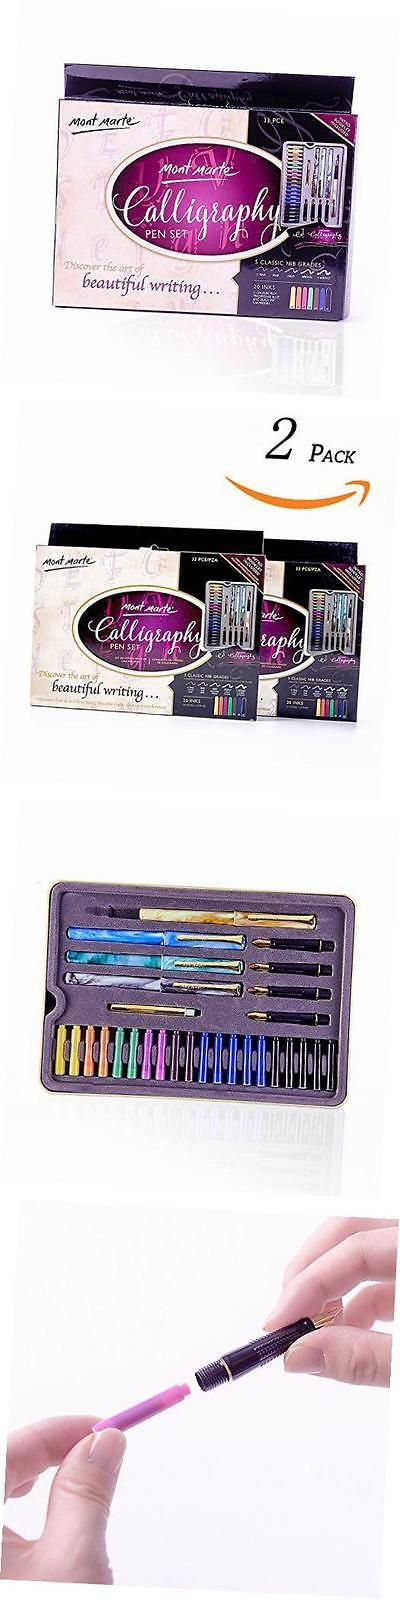 Calligraphy Sets 41203: Calligraphy Pen Set 66Pce-2Pack -> BUY IT NOW ONLY: $48.58 on eBay!